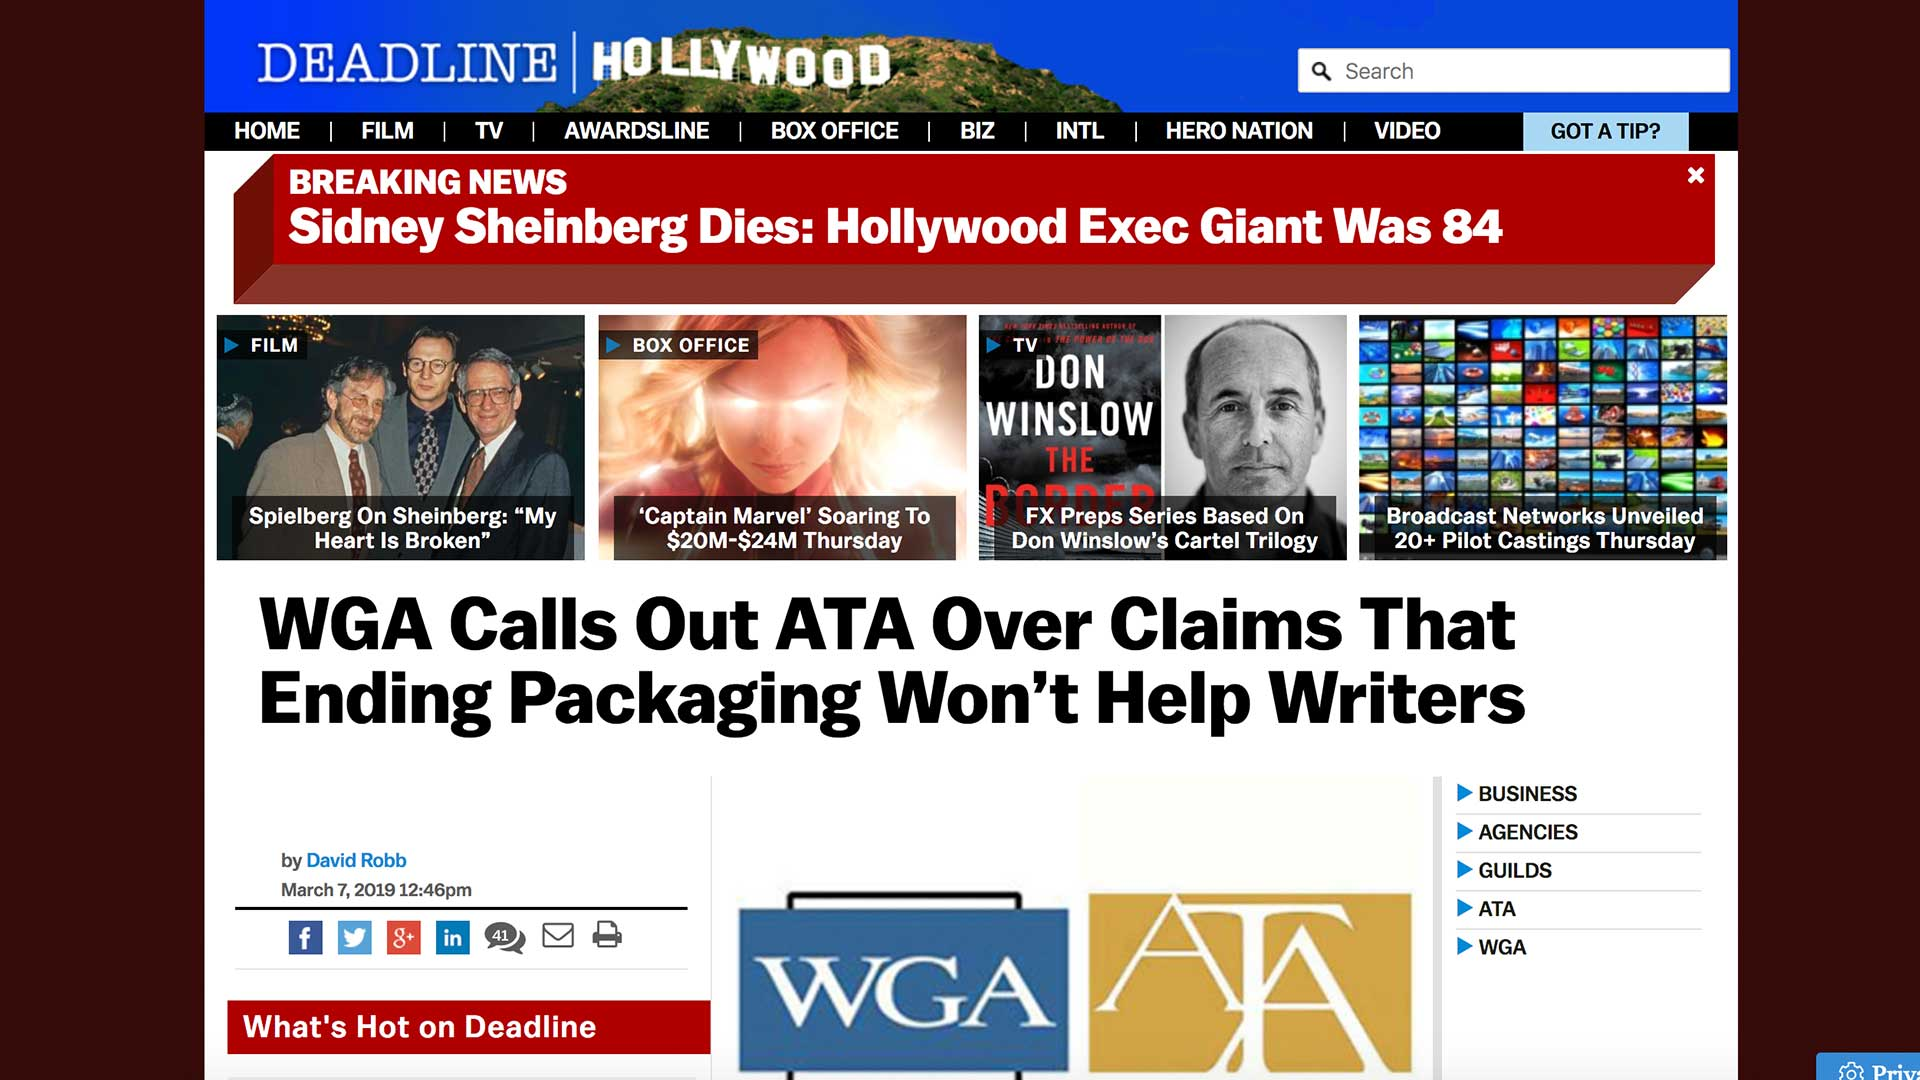 Fairness Rocks News WGA Calls Out ATA Over Claims That Ending Packaging Won't Help Writers